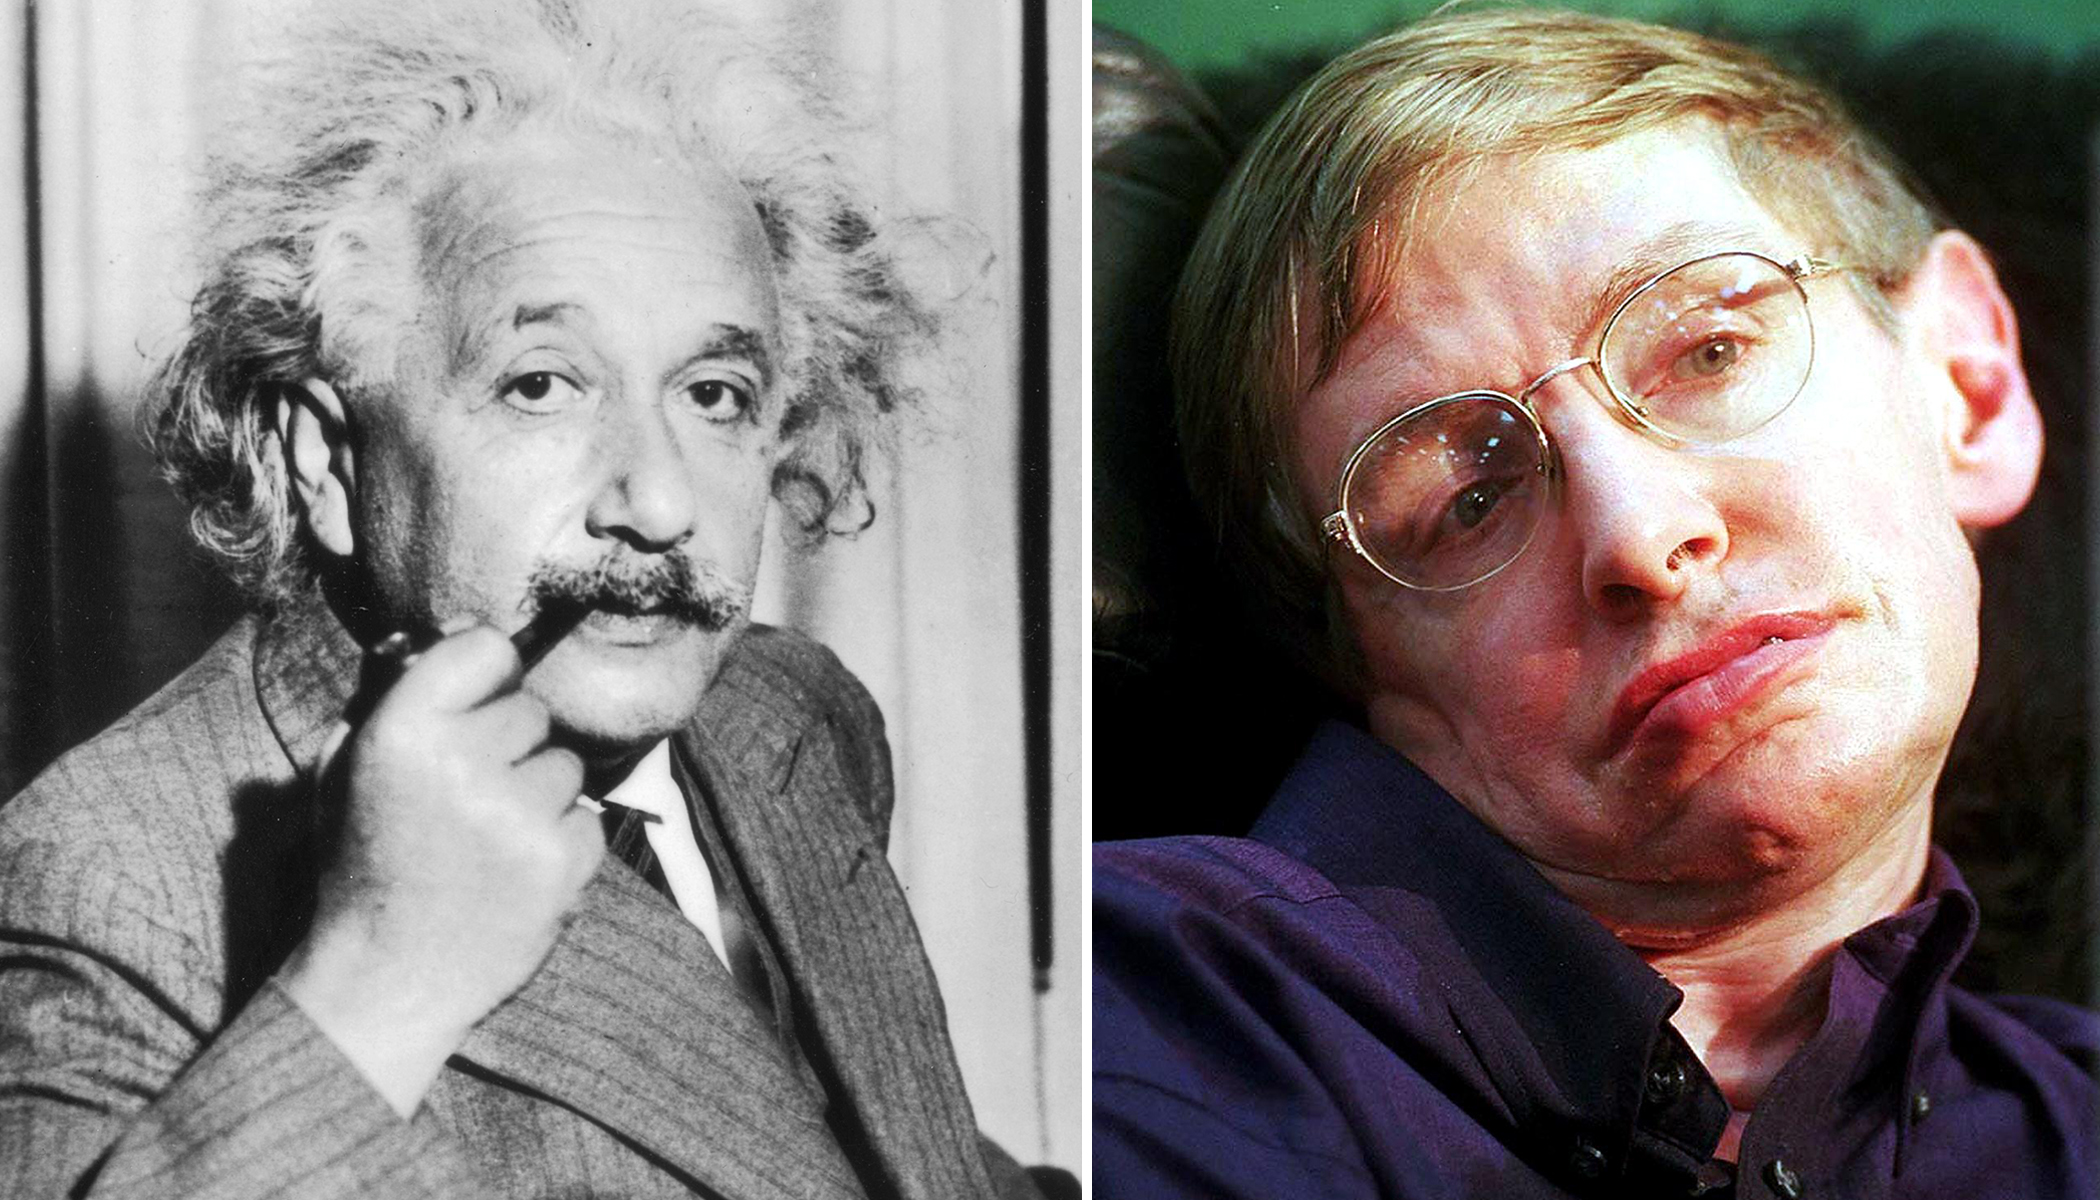 11-Year-Old UK Girl Gets Higher Score on IQ Test Than Einstein and Stephen Hawking